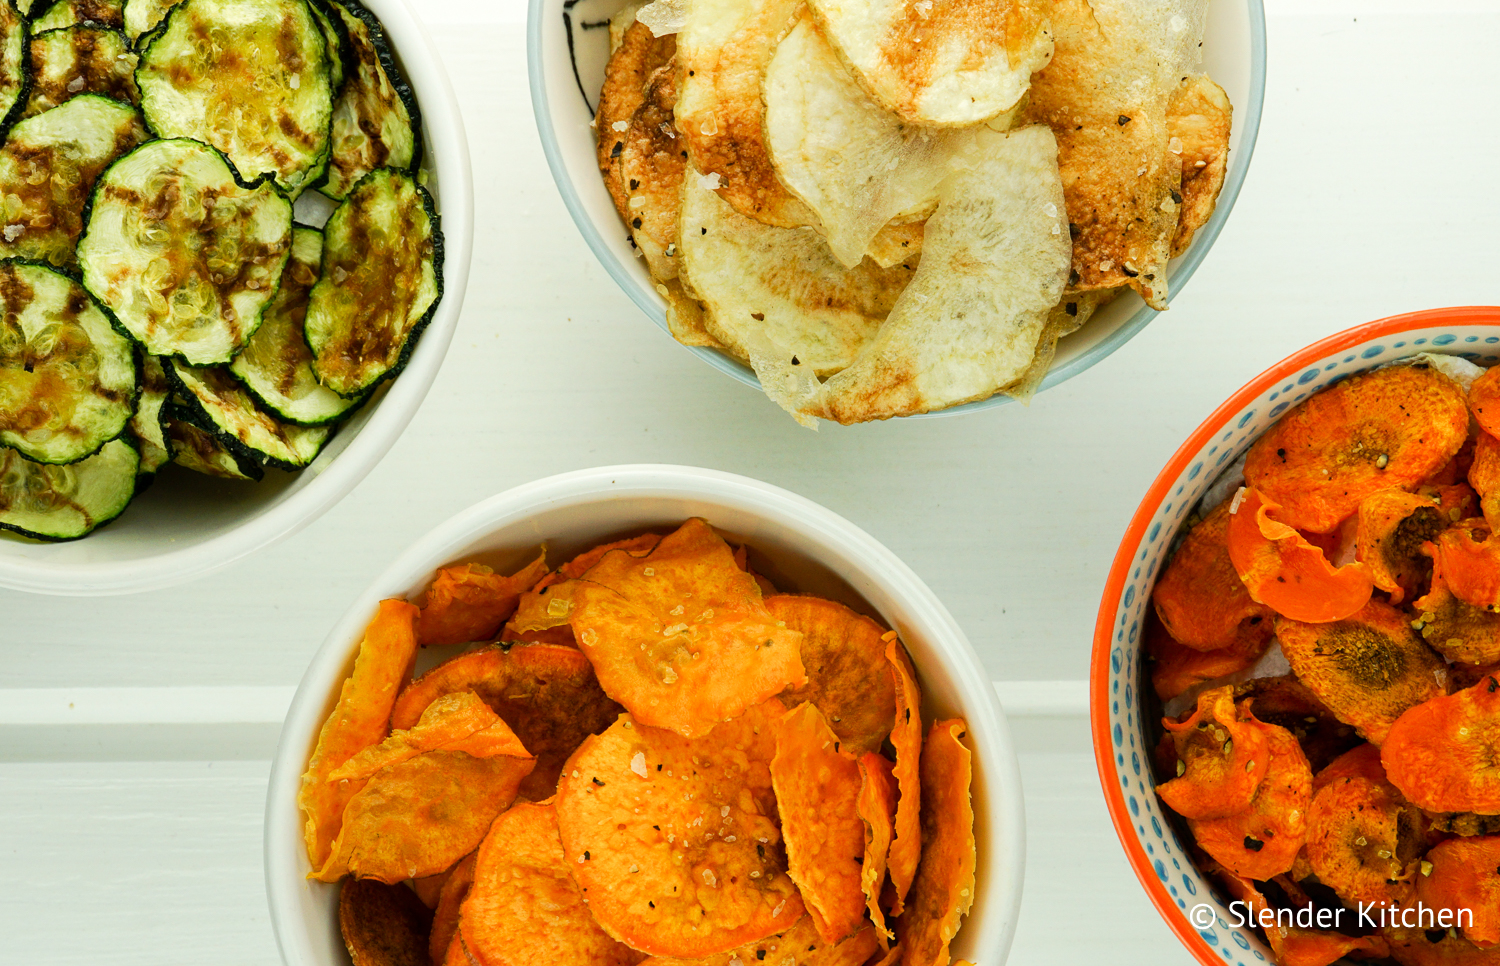 Microwave veggie chips slender kitchen microwave veggie chips made with sweet potatoes zucchini carrots or regular potatoes for forumfinder Choice Image